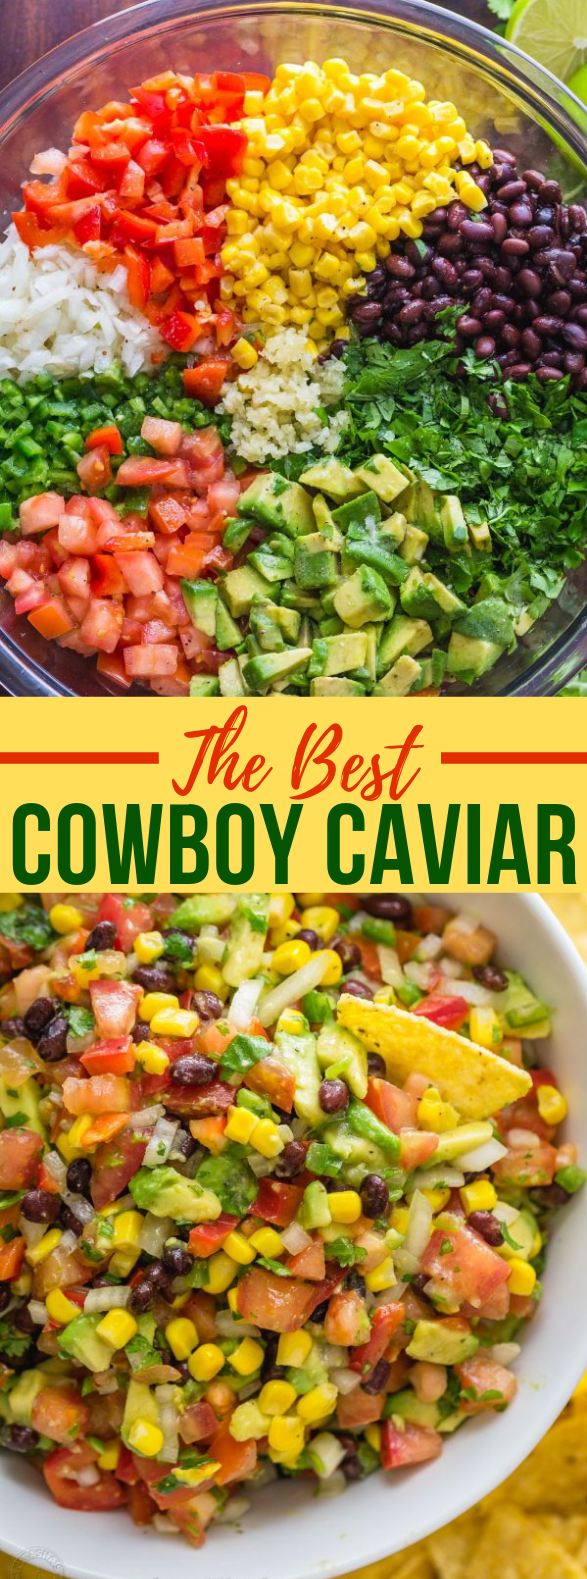 Cowboy Caviar Recipe #vegetarian #summer